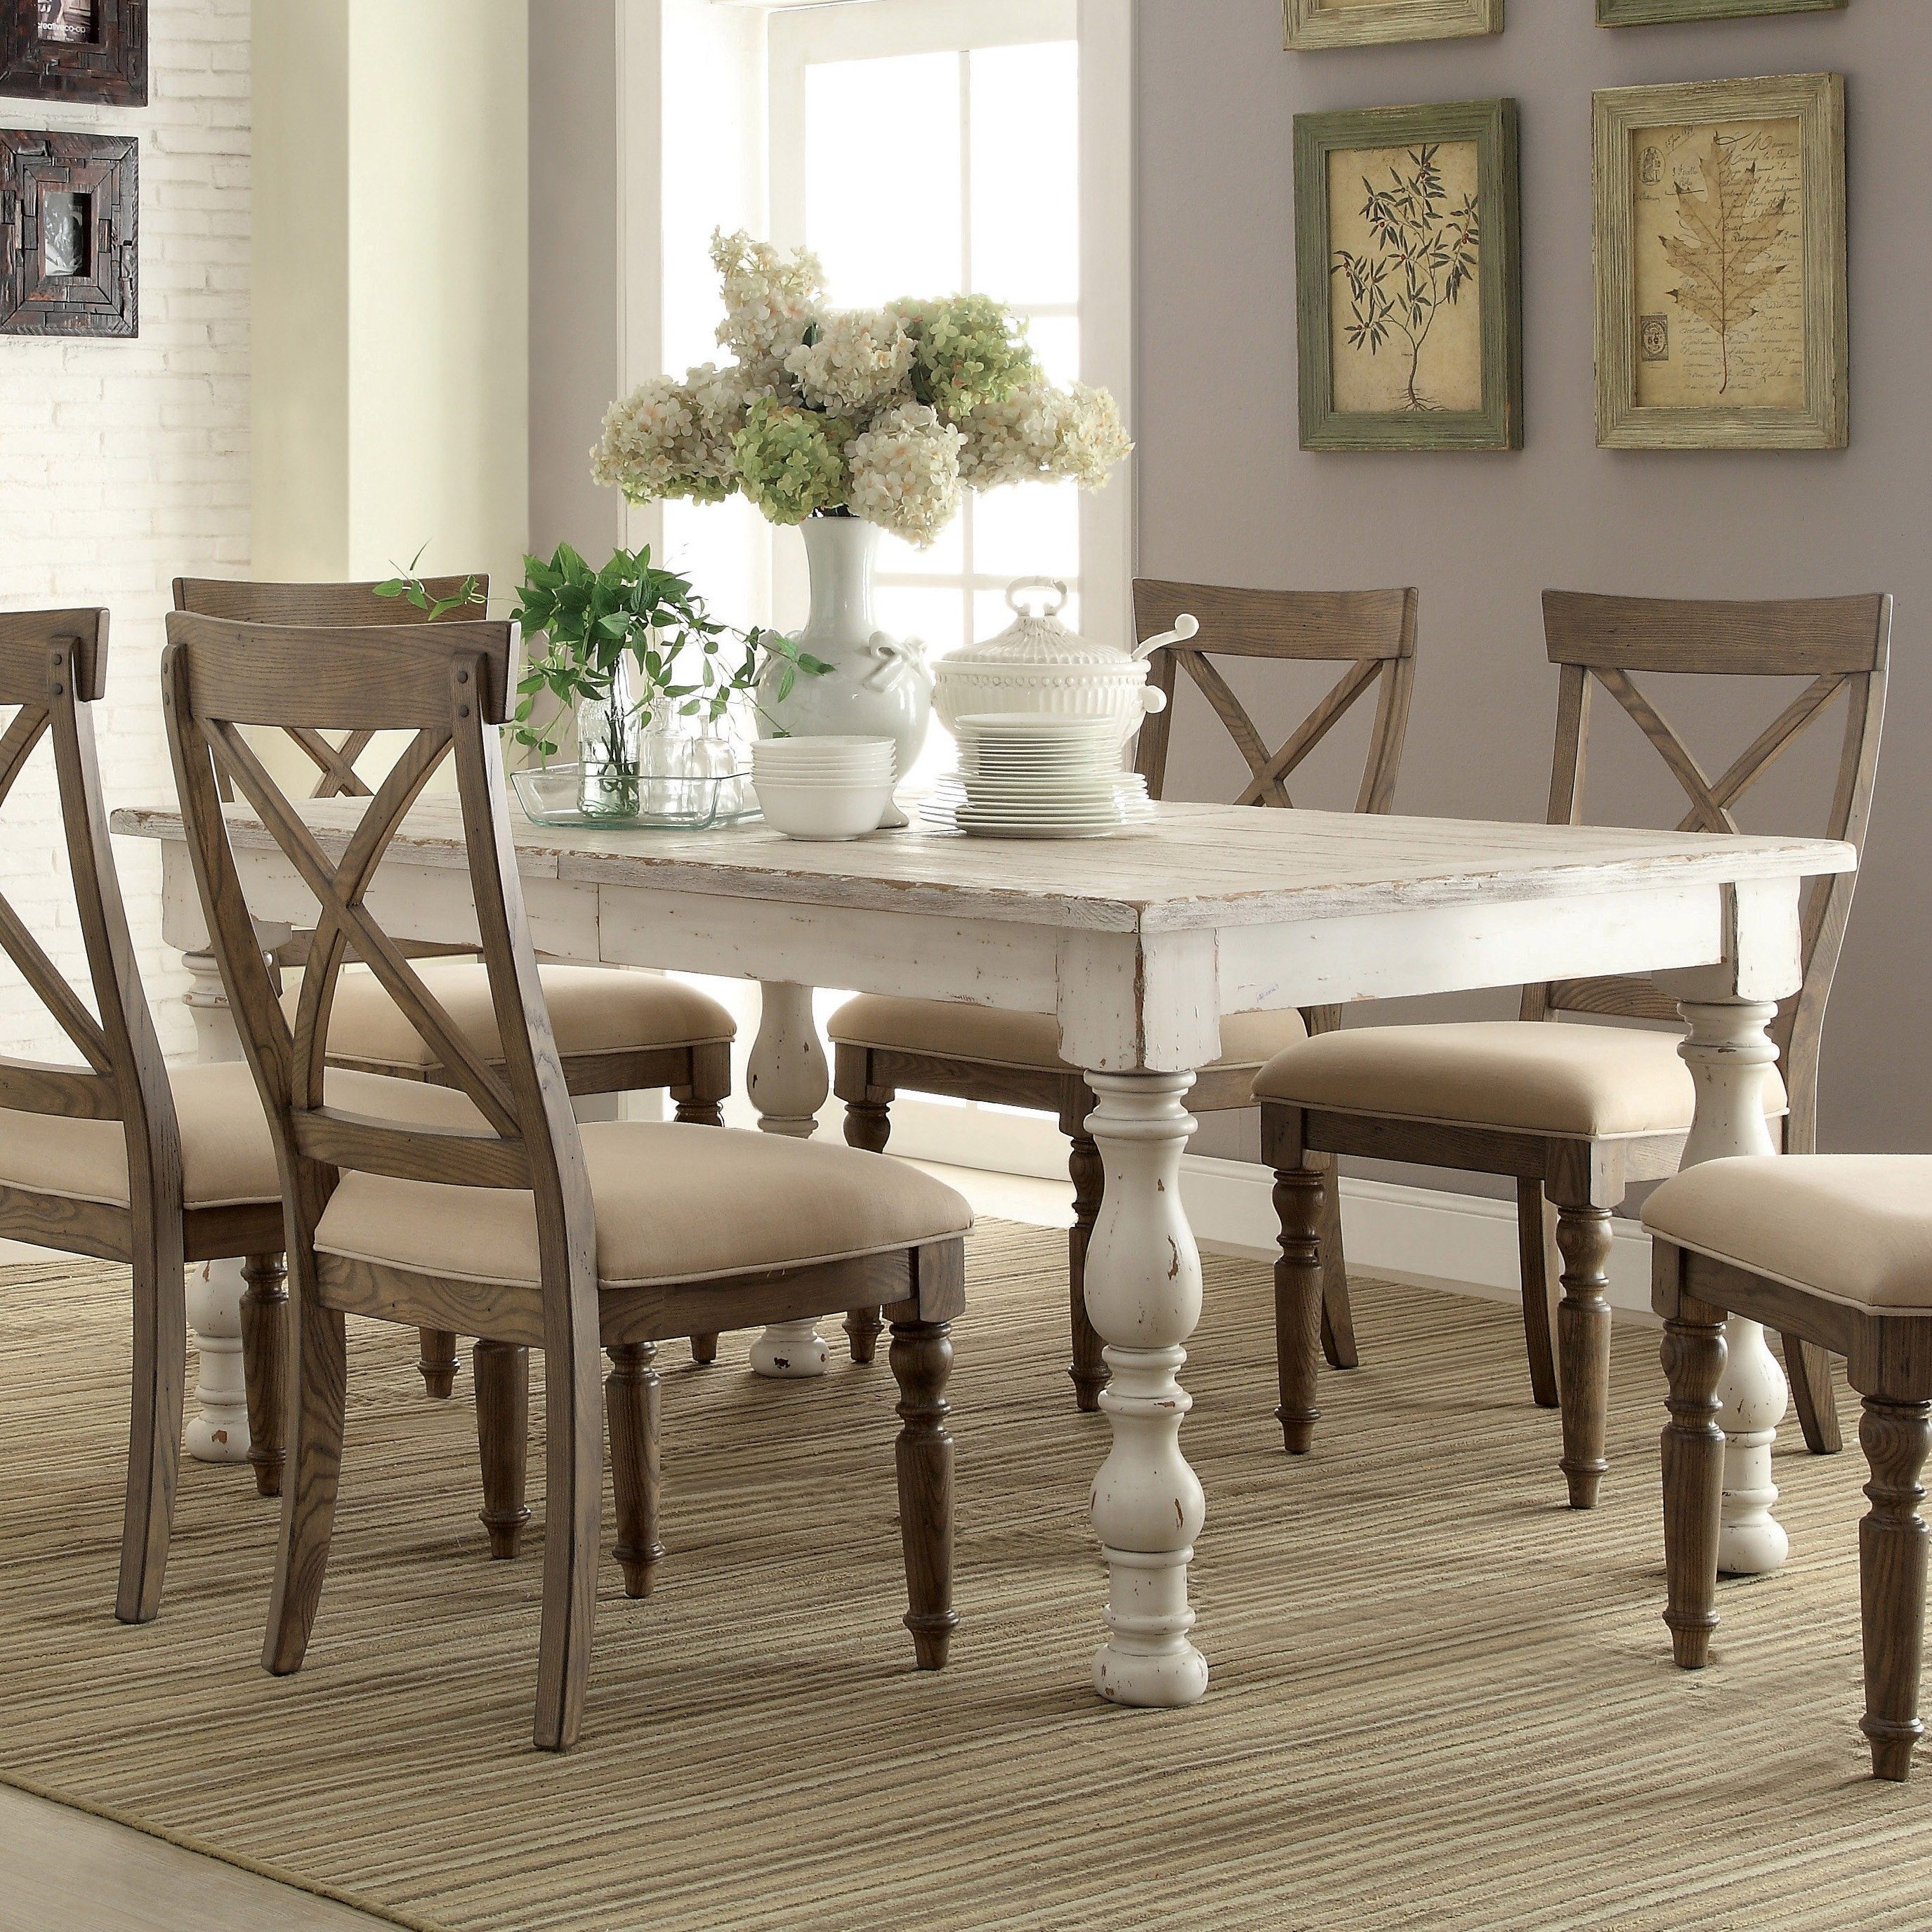 White Dining Room Chair Aberdeen Wood Rectangular Dining Table Only In Weathered Worn